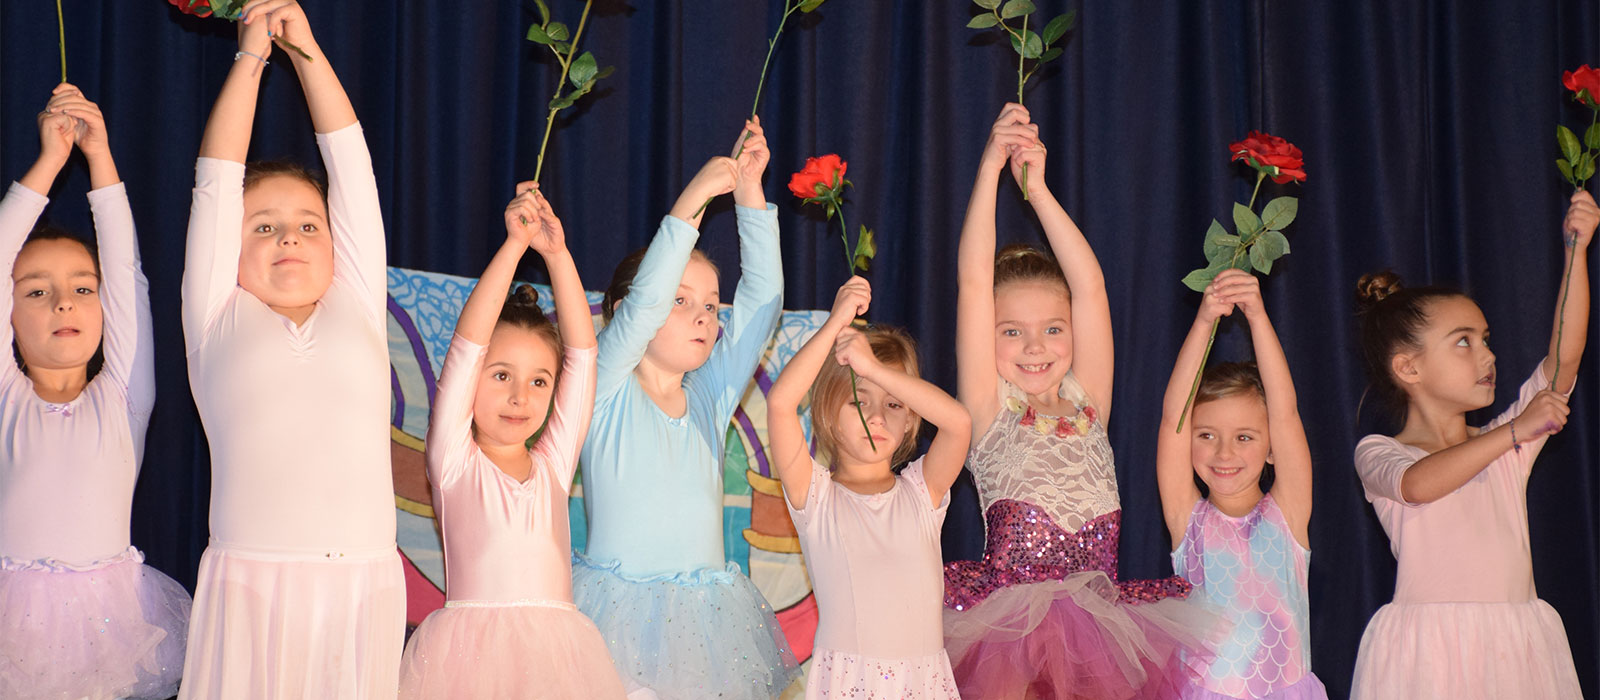 St. James Continues 'Nutcracker' Tradition